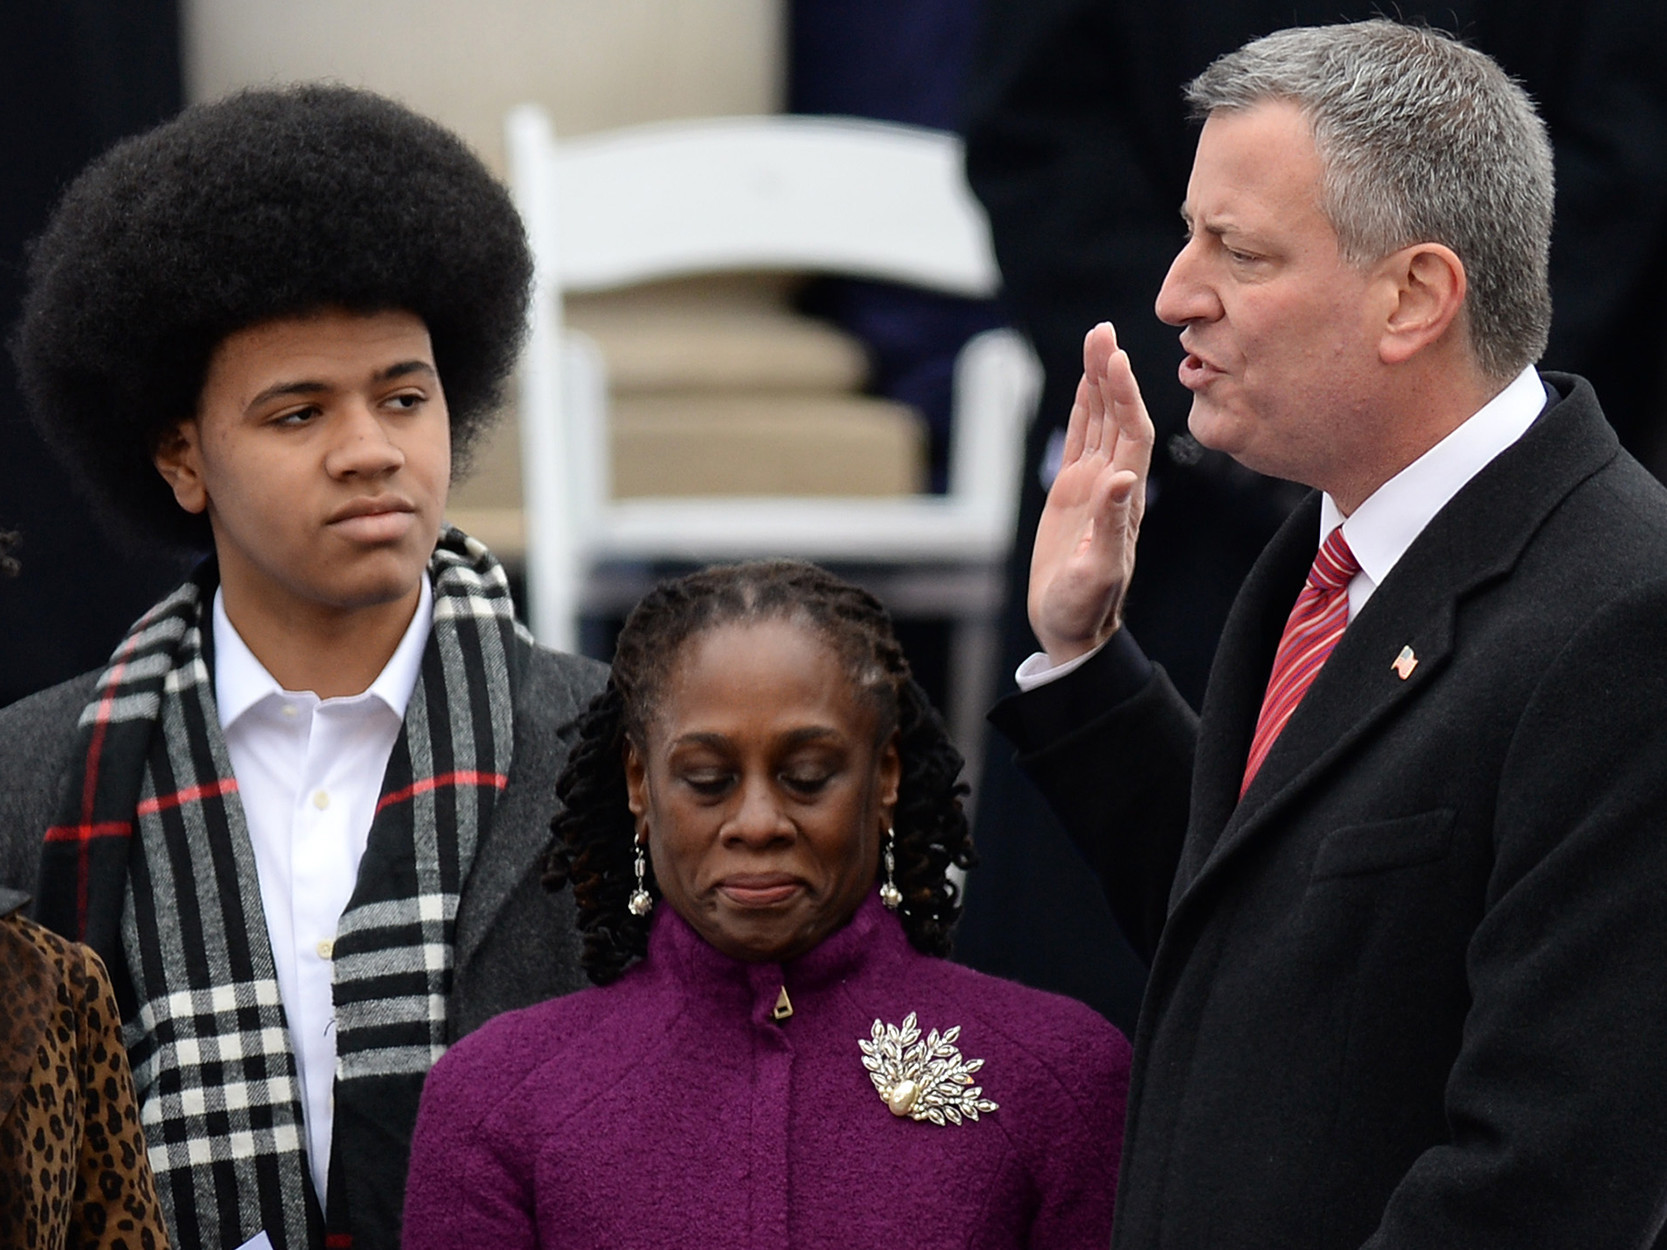 Mayor de Blasio's son, Dante, writes about his fear of police and the talk he had with his dad